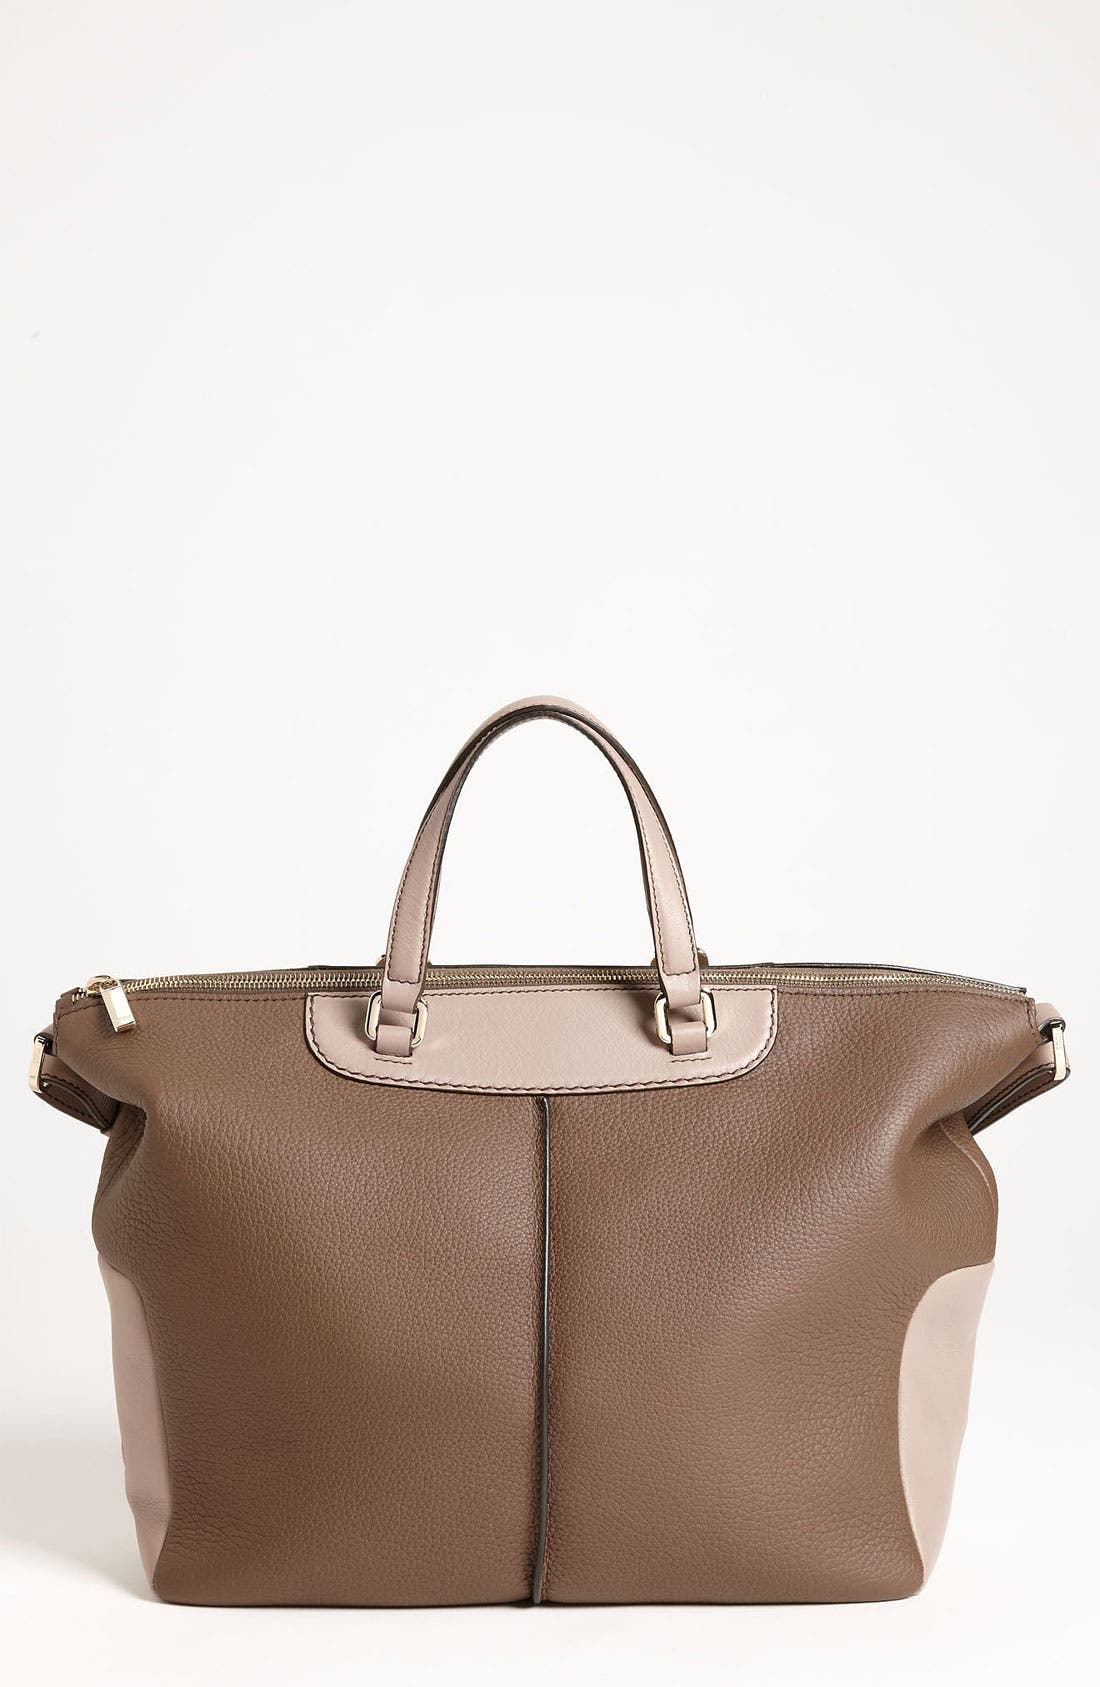 Main Image - Tod's 'Classic - Medium' Leather Tote